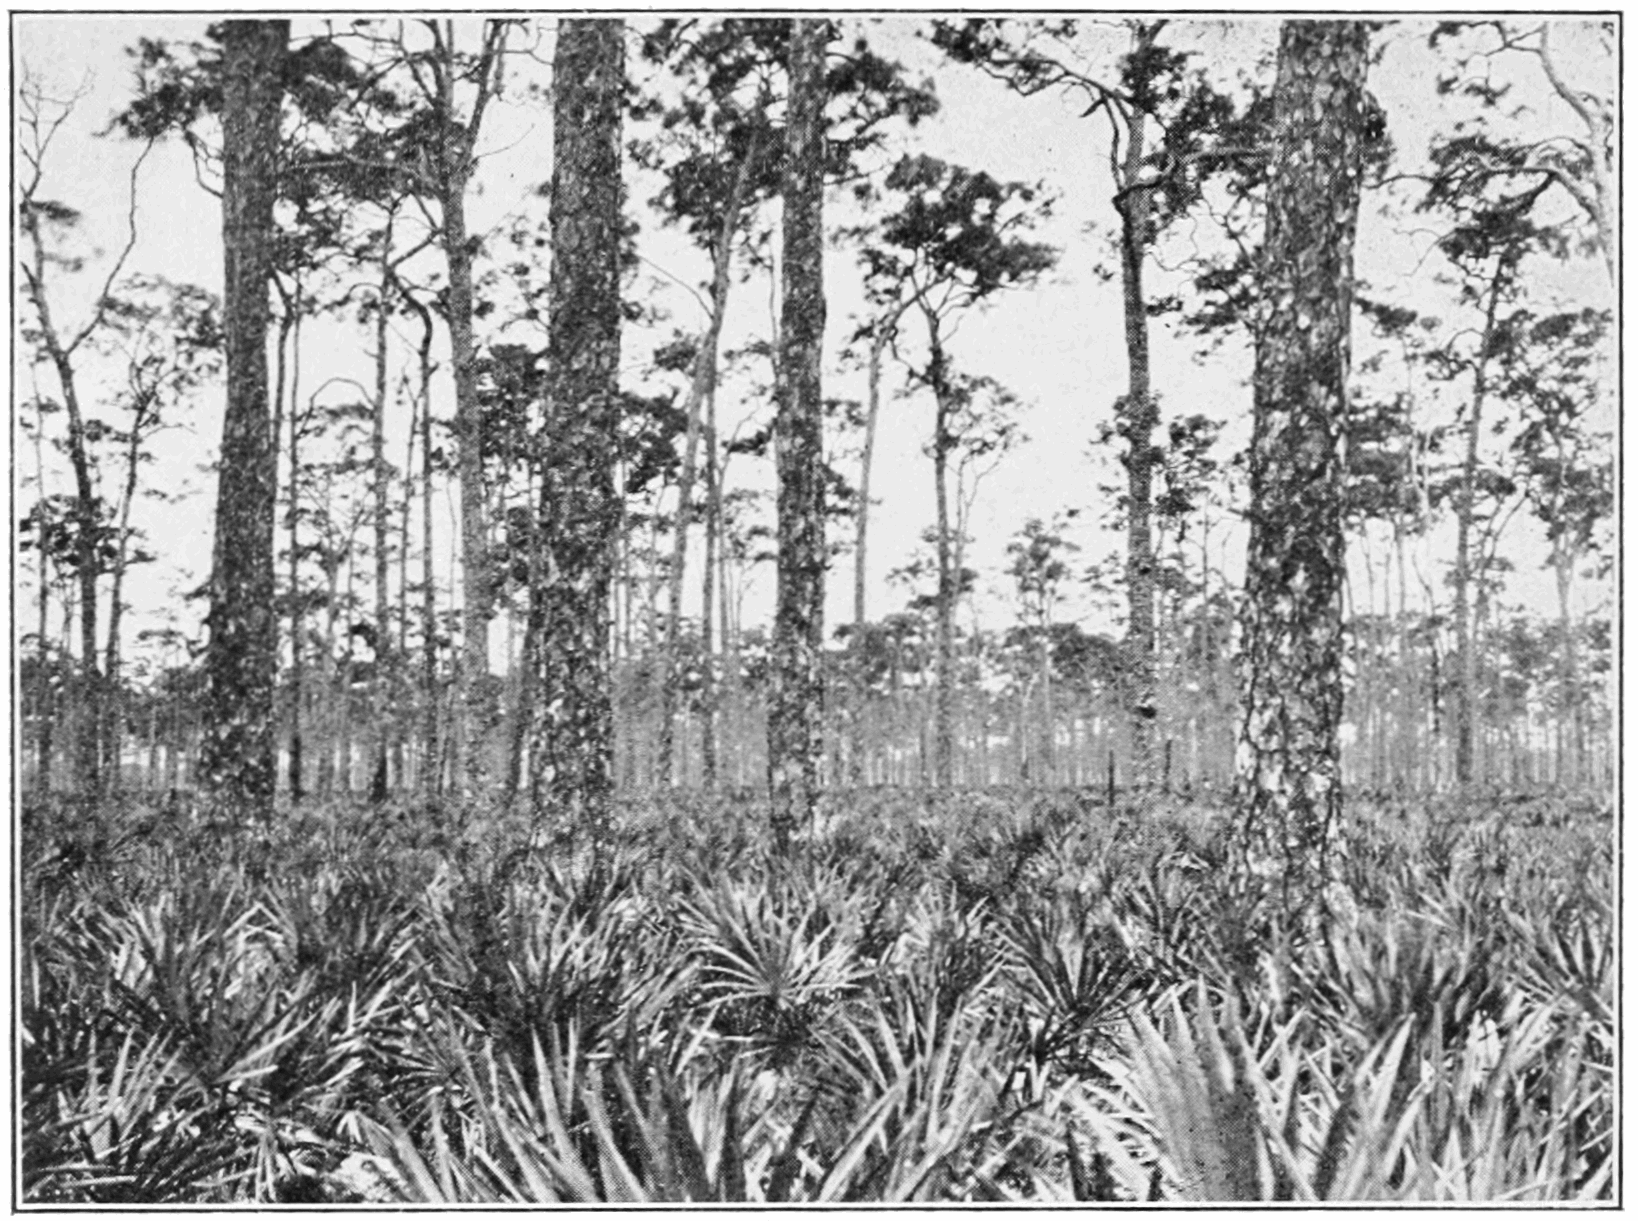 PSM V85 D364 Pinus elliottii in dade county florida.png